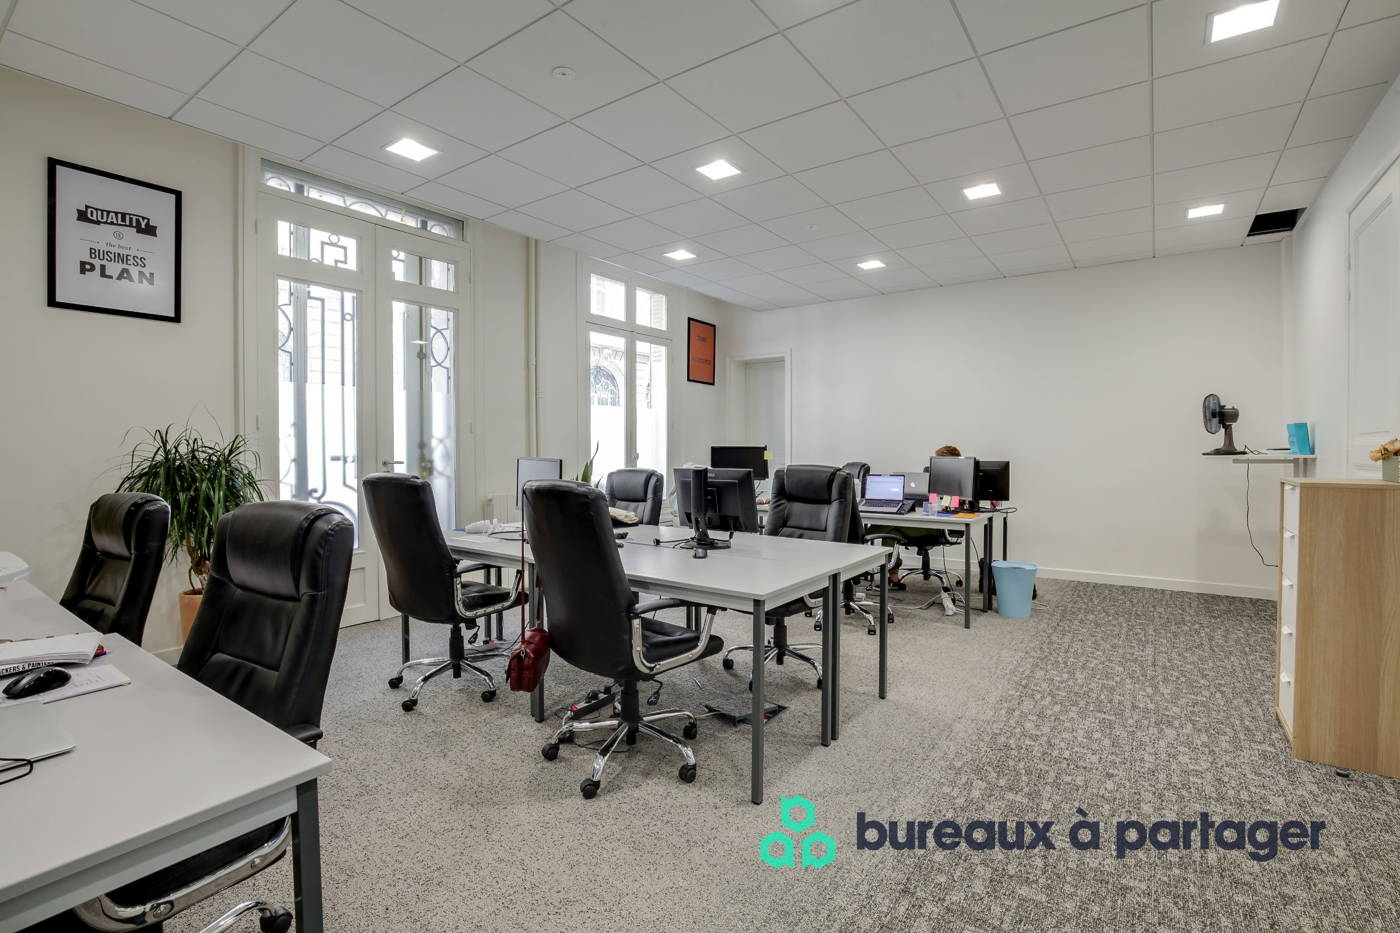 Location bureau paris bureau moderne paris saint lazare